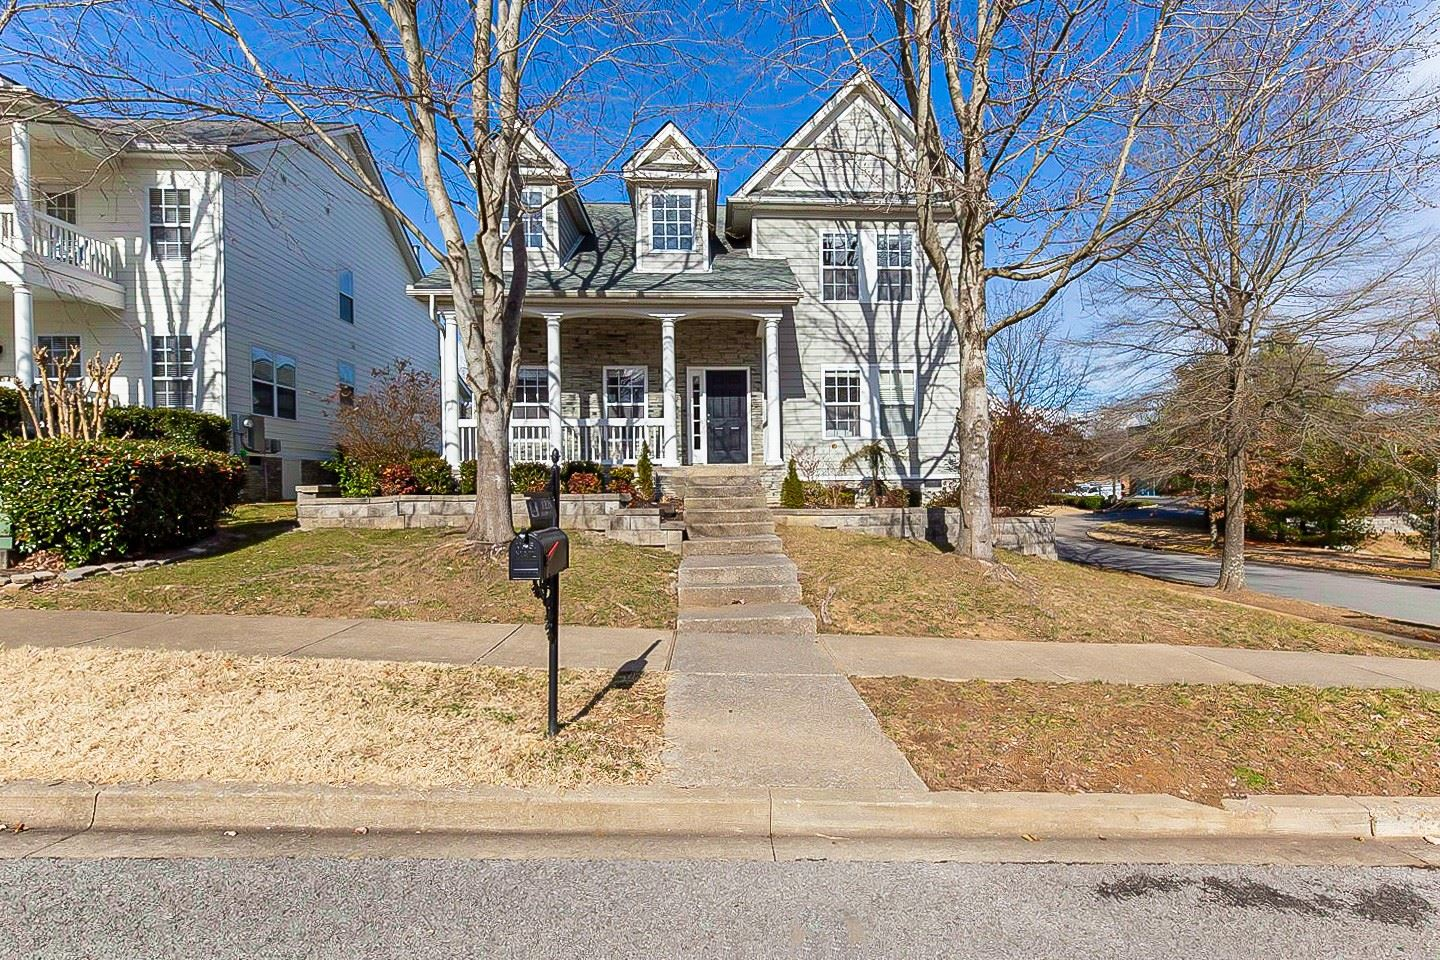 Photo of 1228 Olympia Pl, Franklin, TN 37067 (MLS # 2221217)